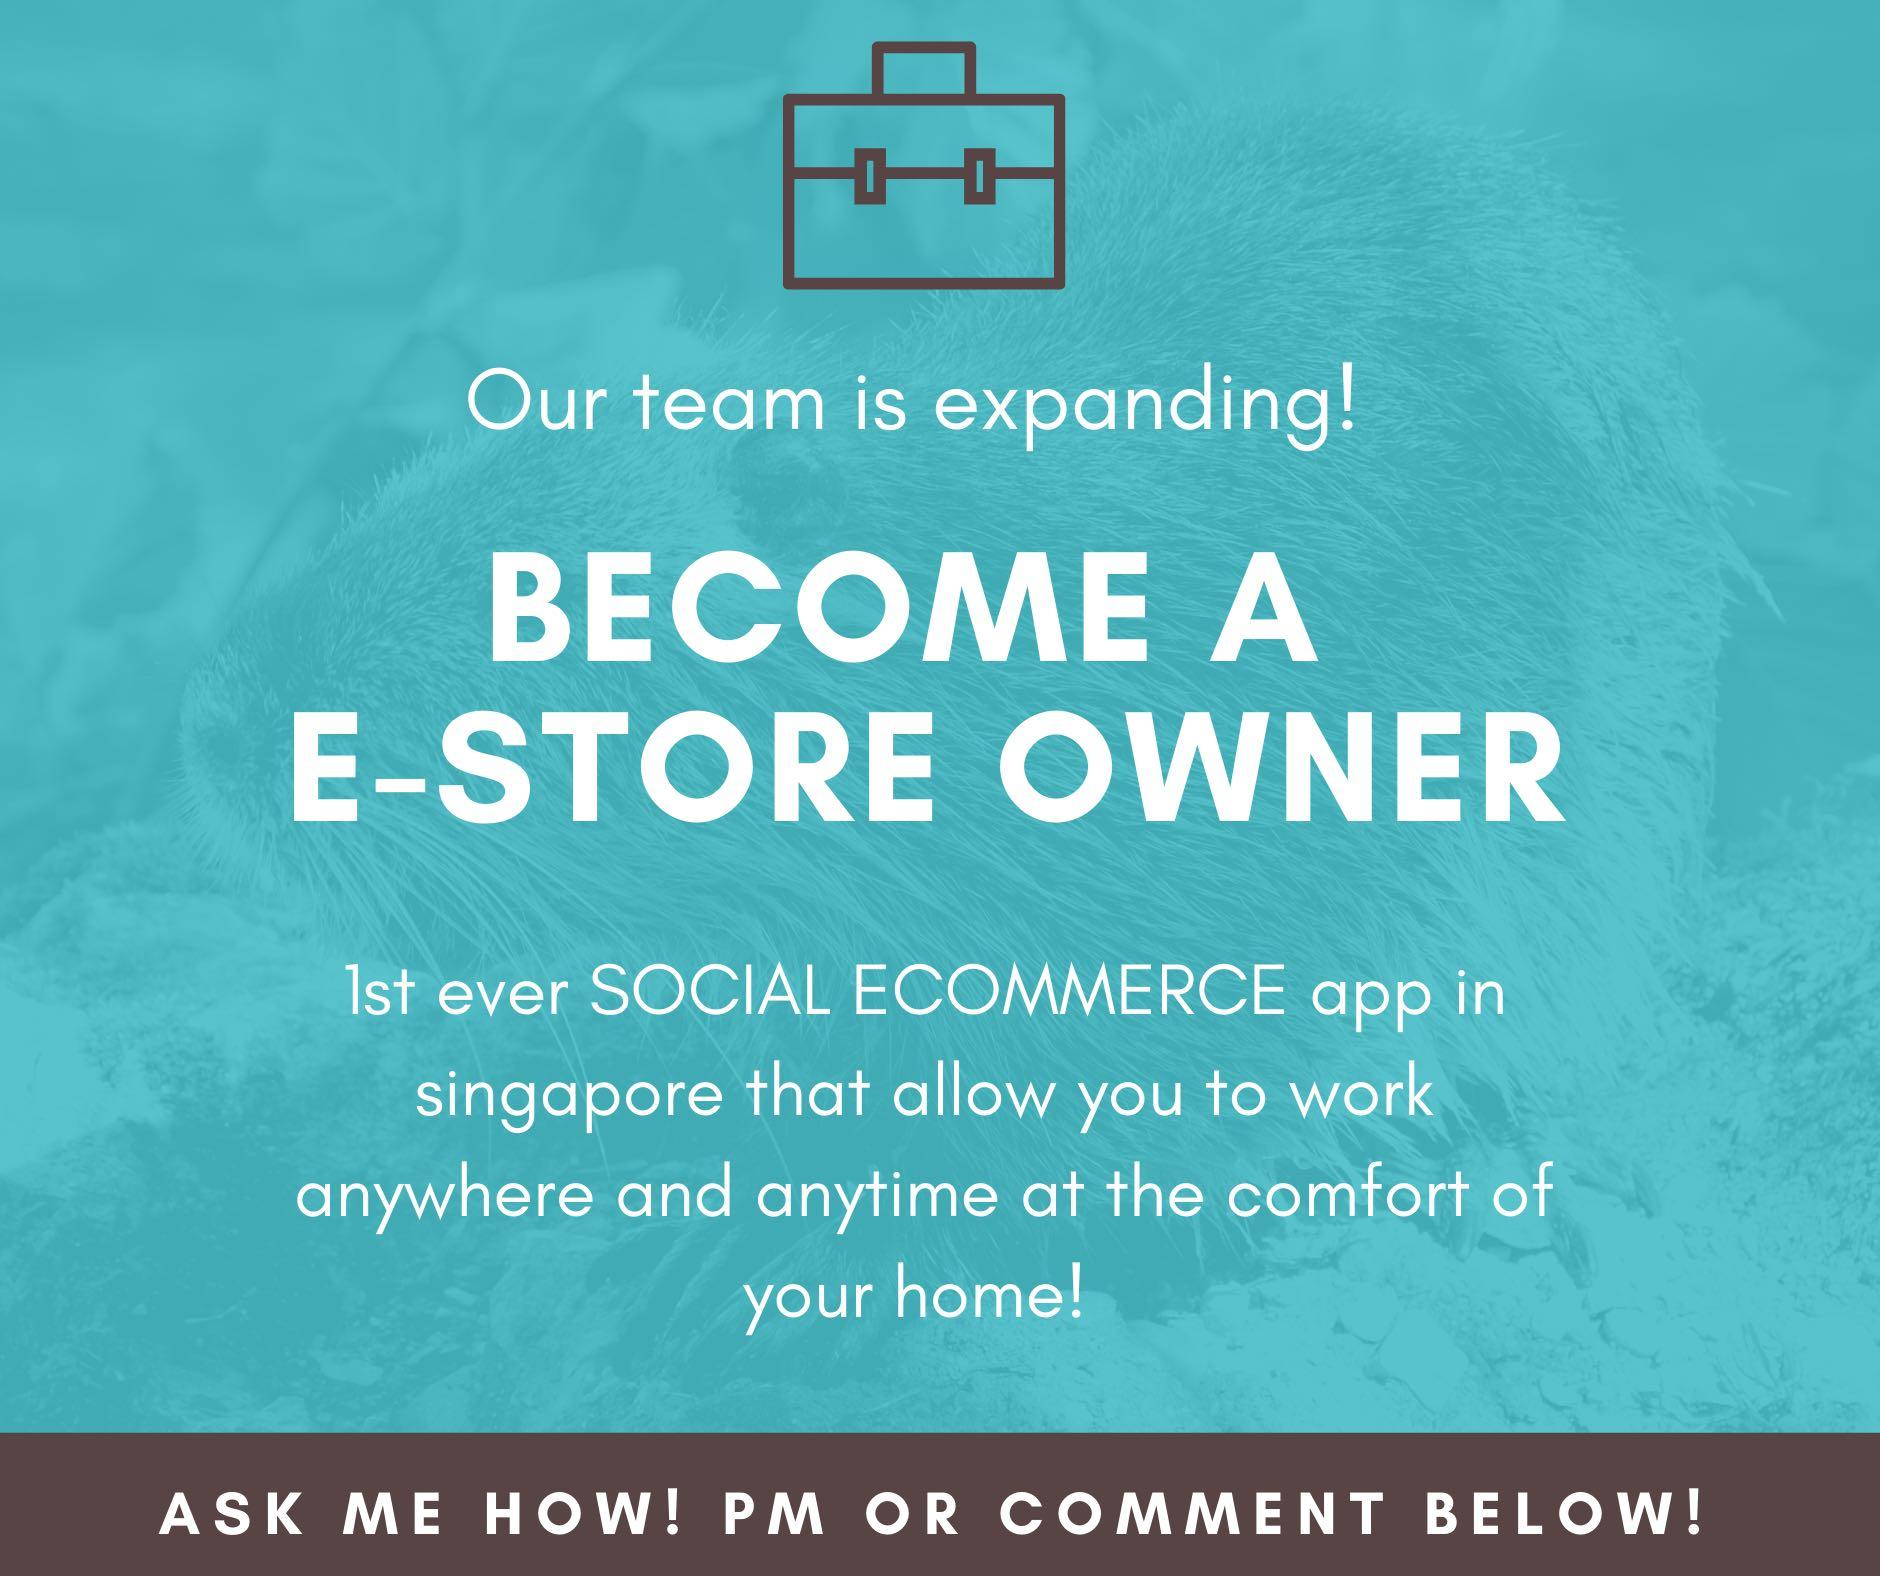 Become a E-Store Owner